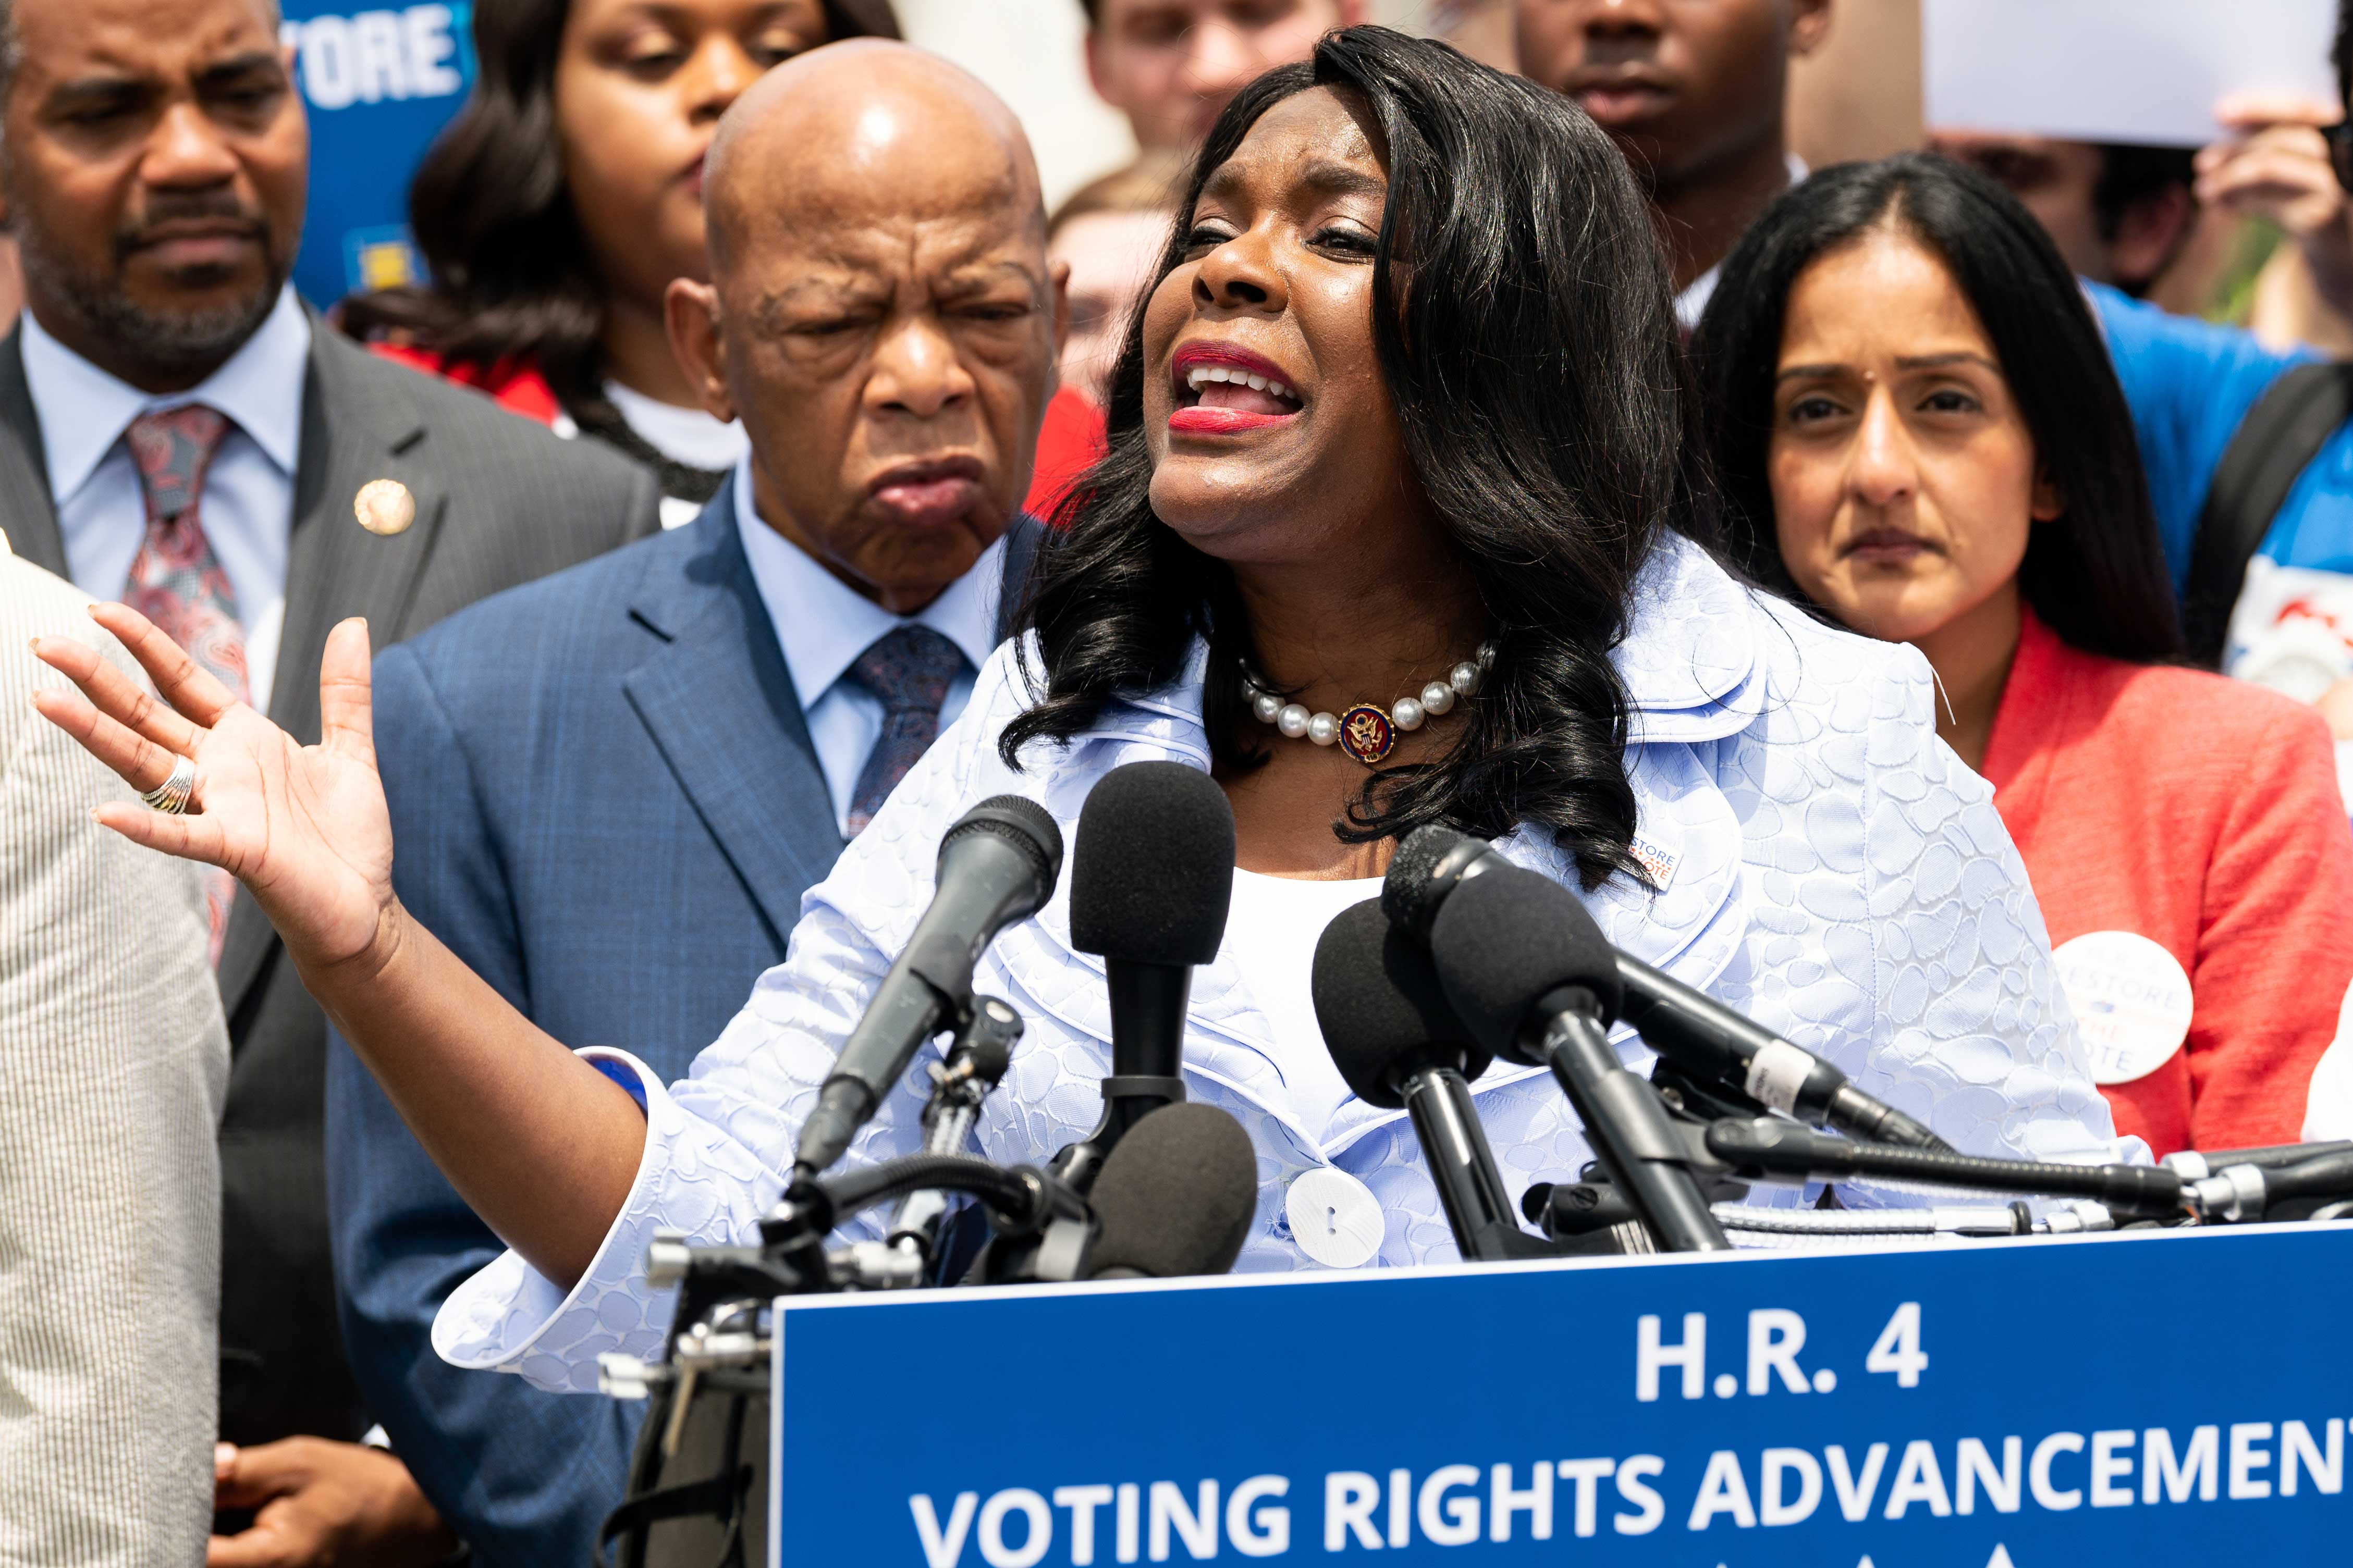 The House has passed a bill to restore key parts of the Voting Rights Act